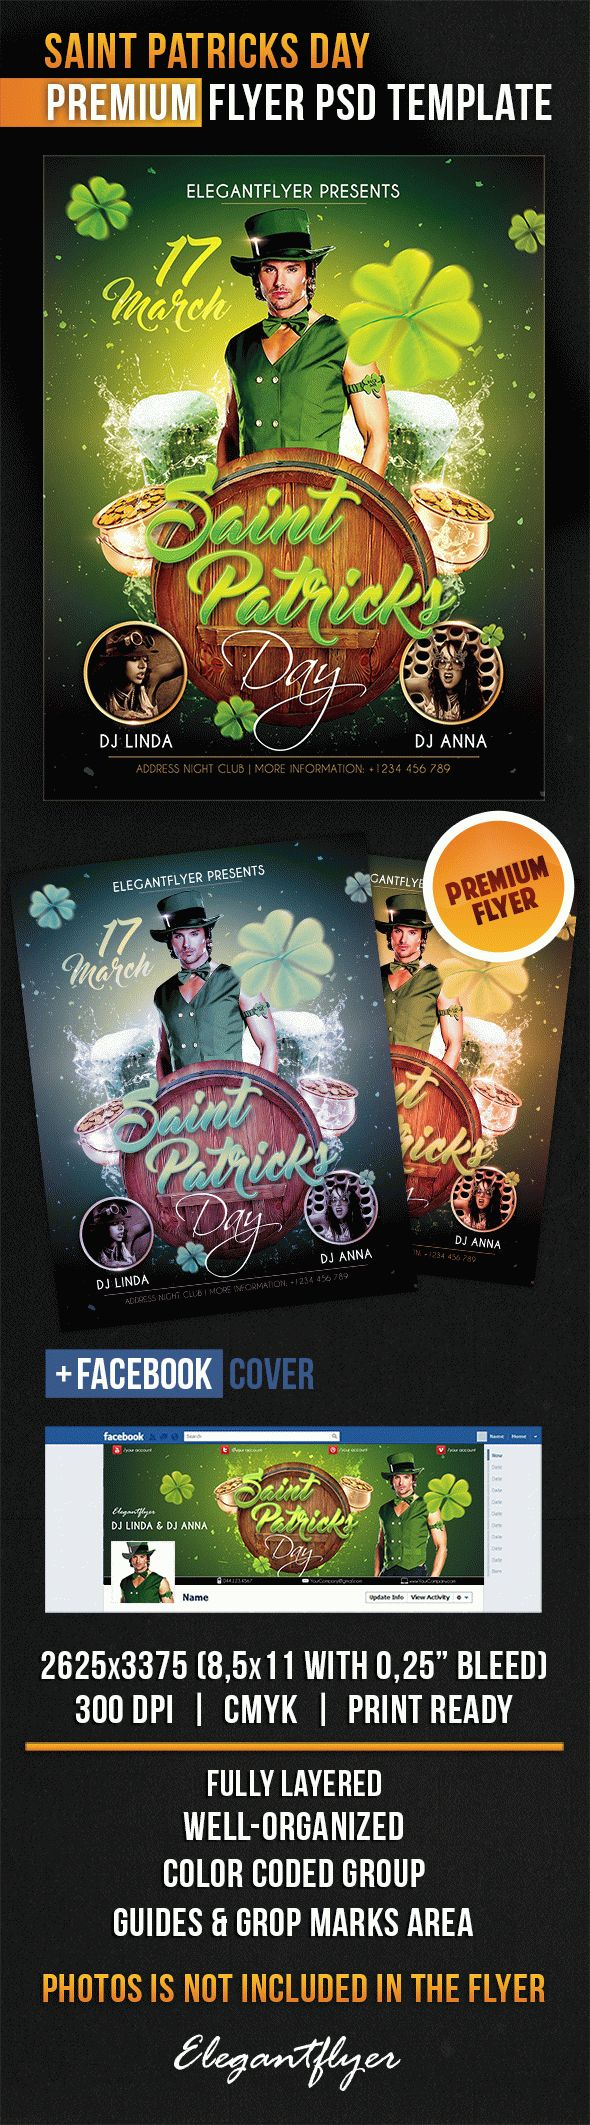 Template PSD For Saint Patricks Day